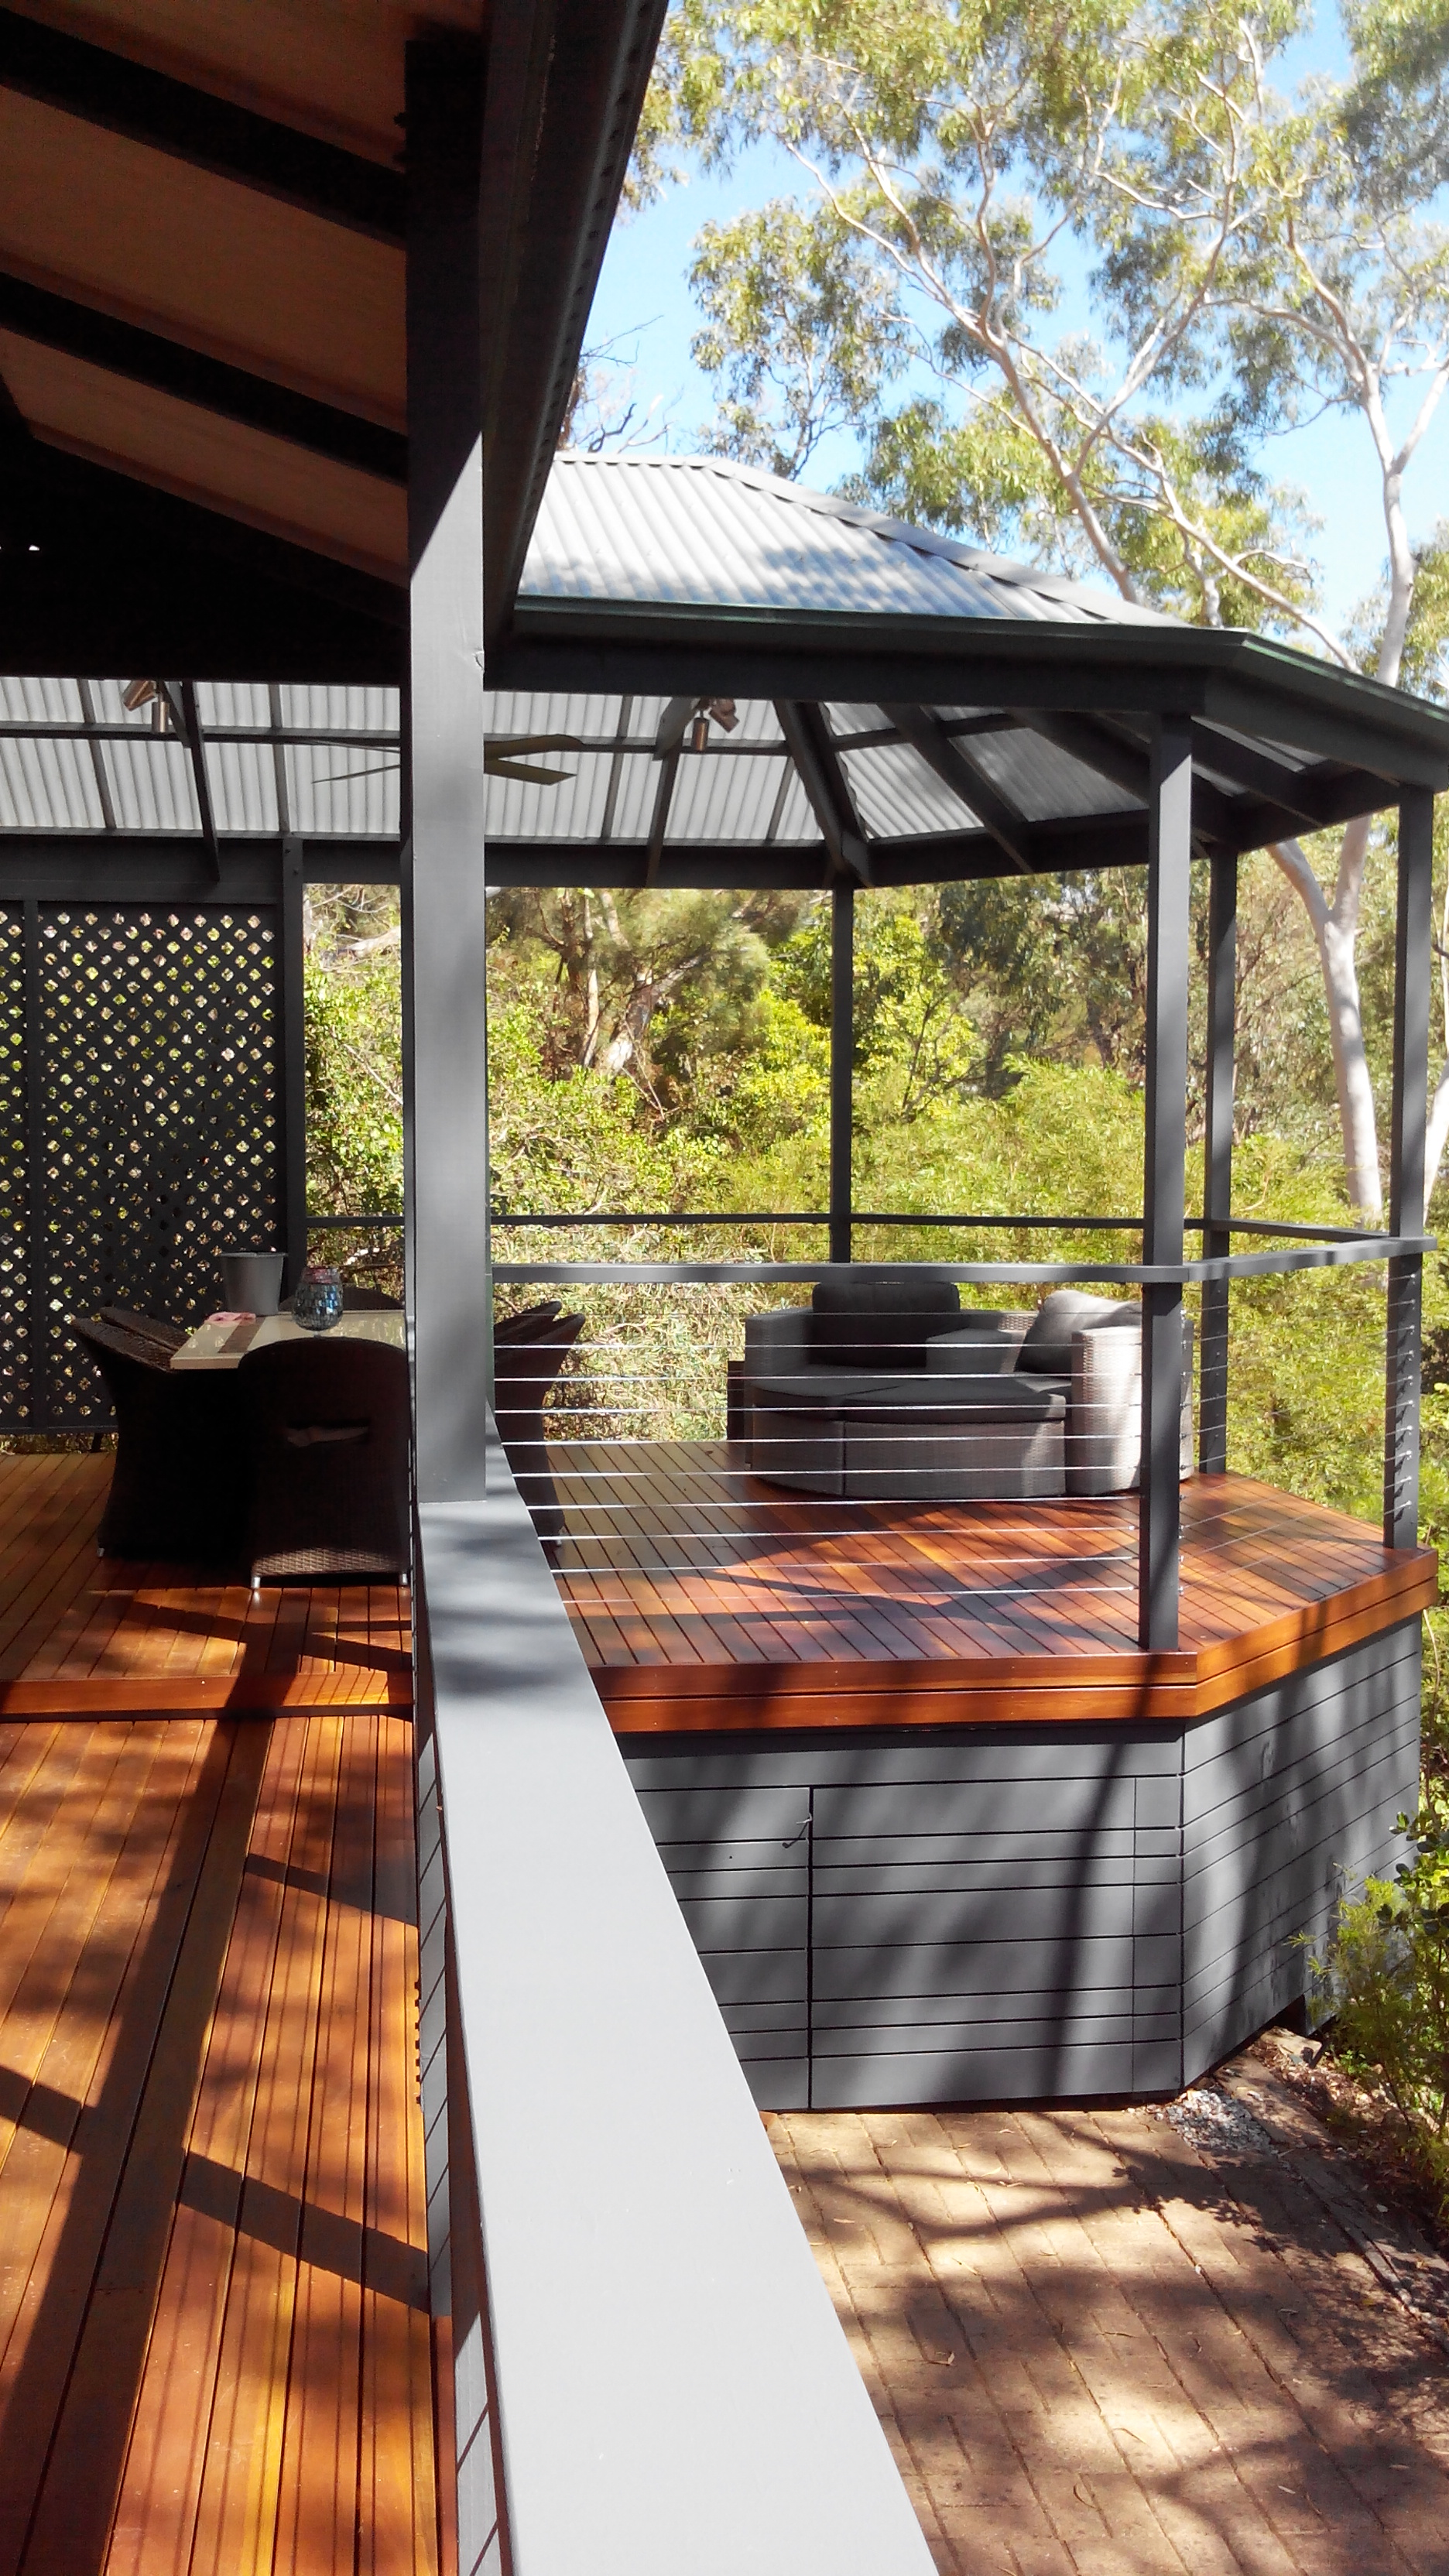 Gazebo Adelaide Decking Timber Decking Adelaide 0421 753 287 Decking Adelaide